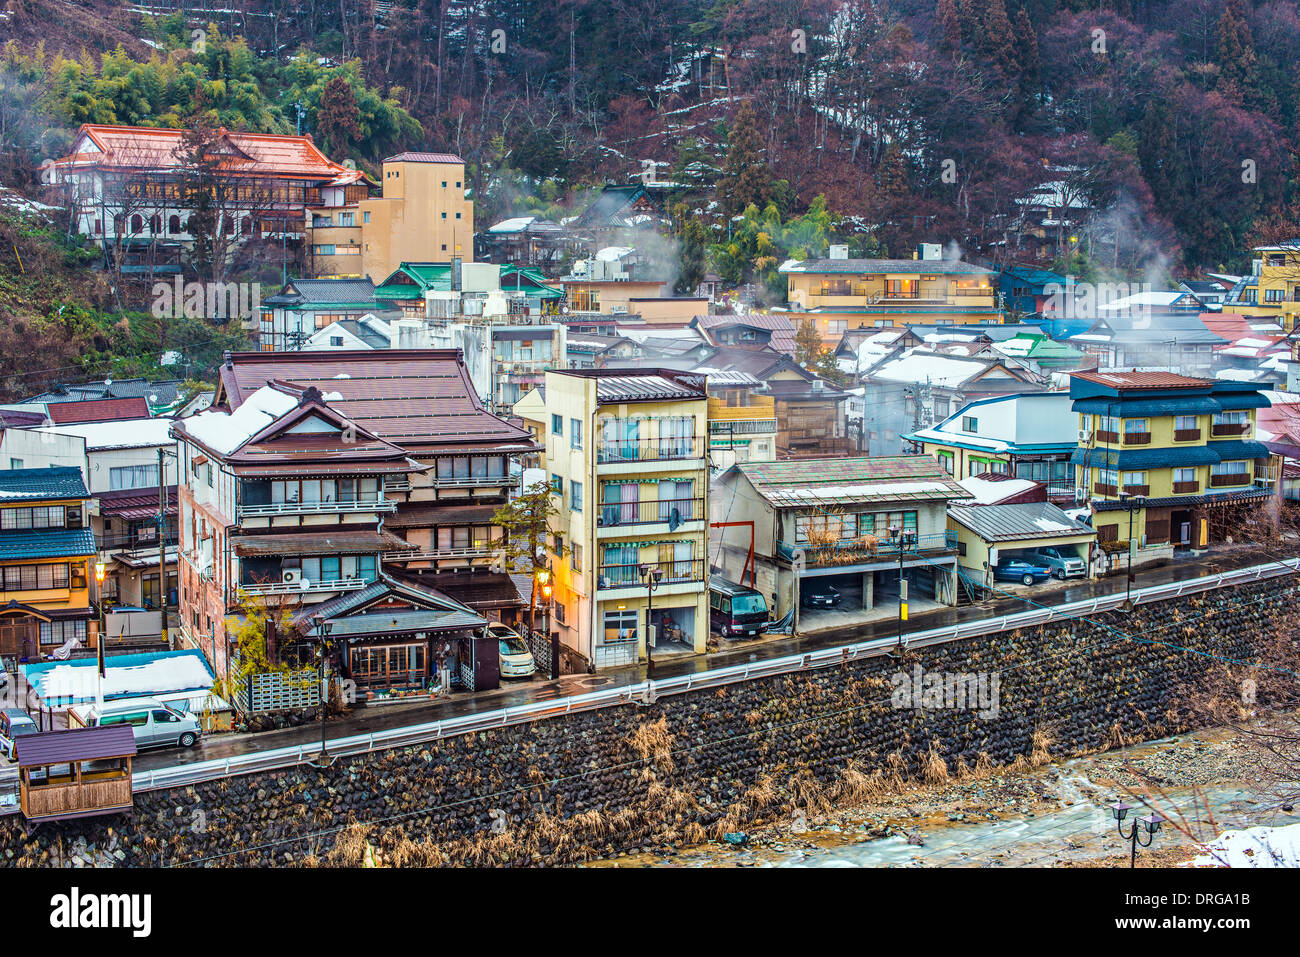 The small town of Shibu Onsen in Nagano Prefecture. The town is famed for the numerous historic bath houses located - Stock Image